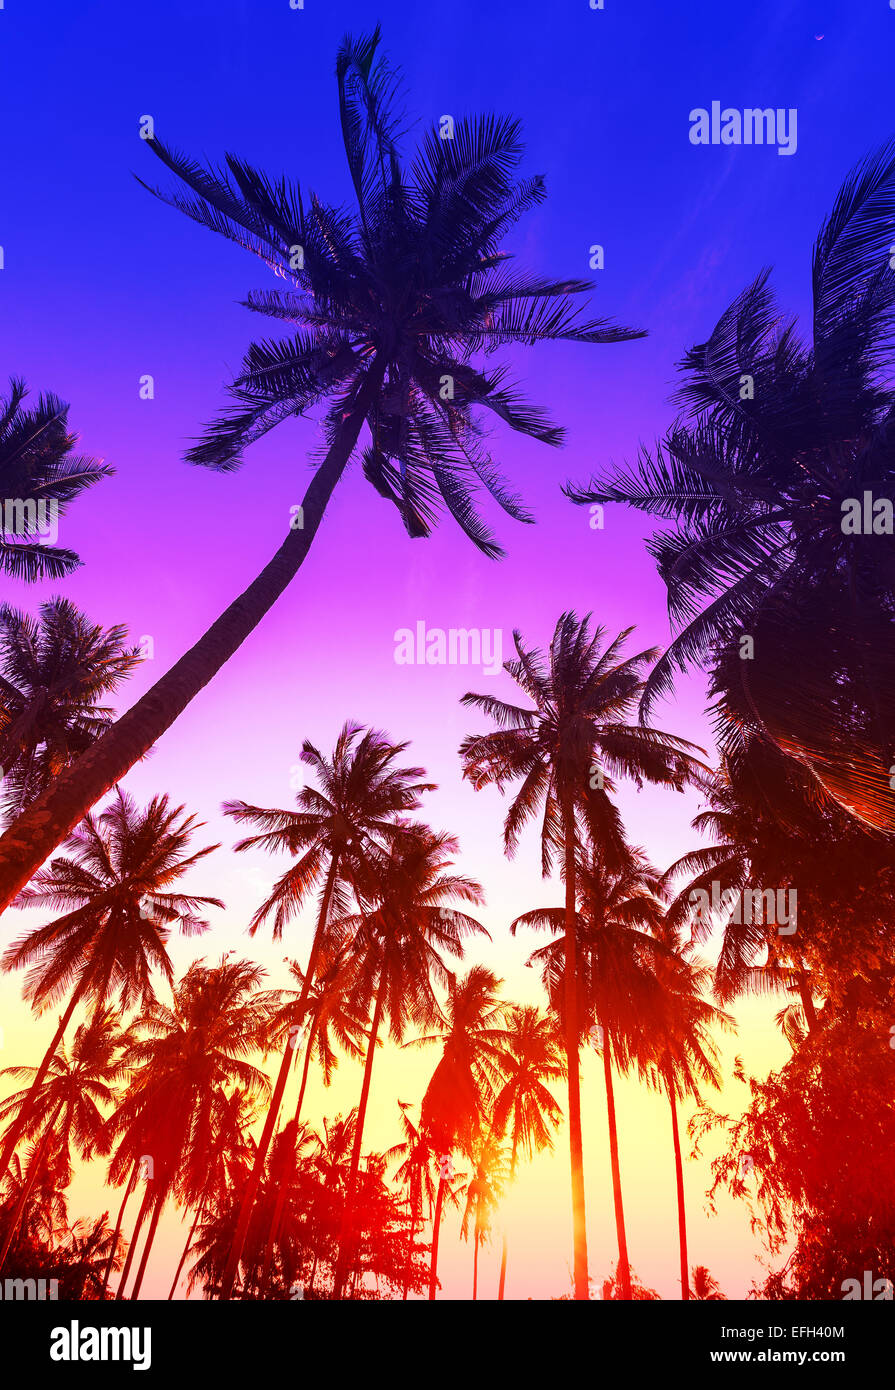 Palm trees silhouettes on tropical beach at sunset. - Stock Image